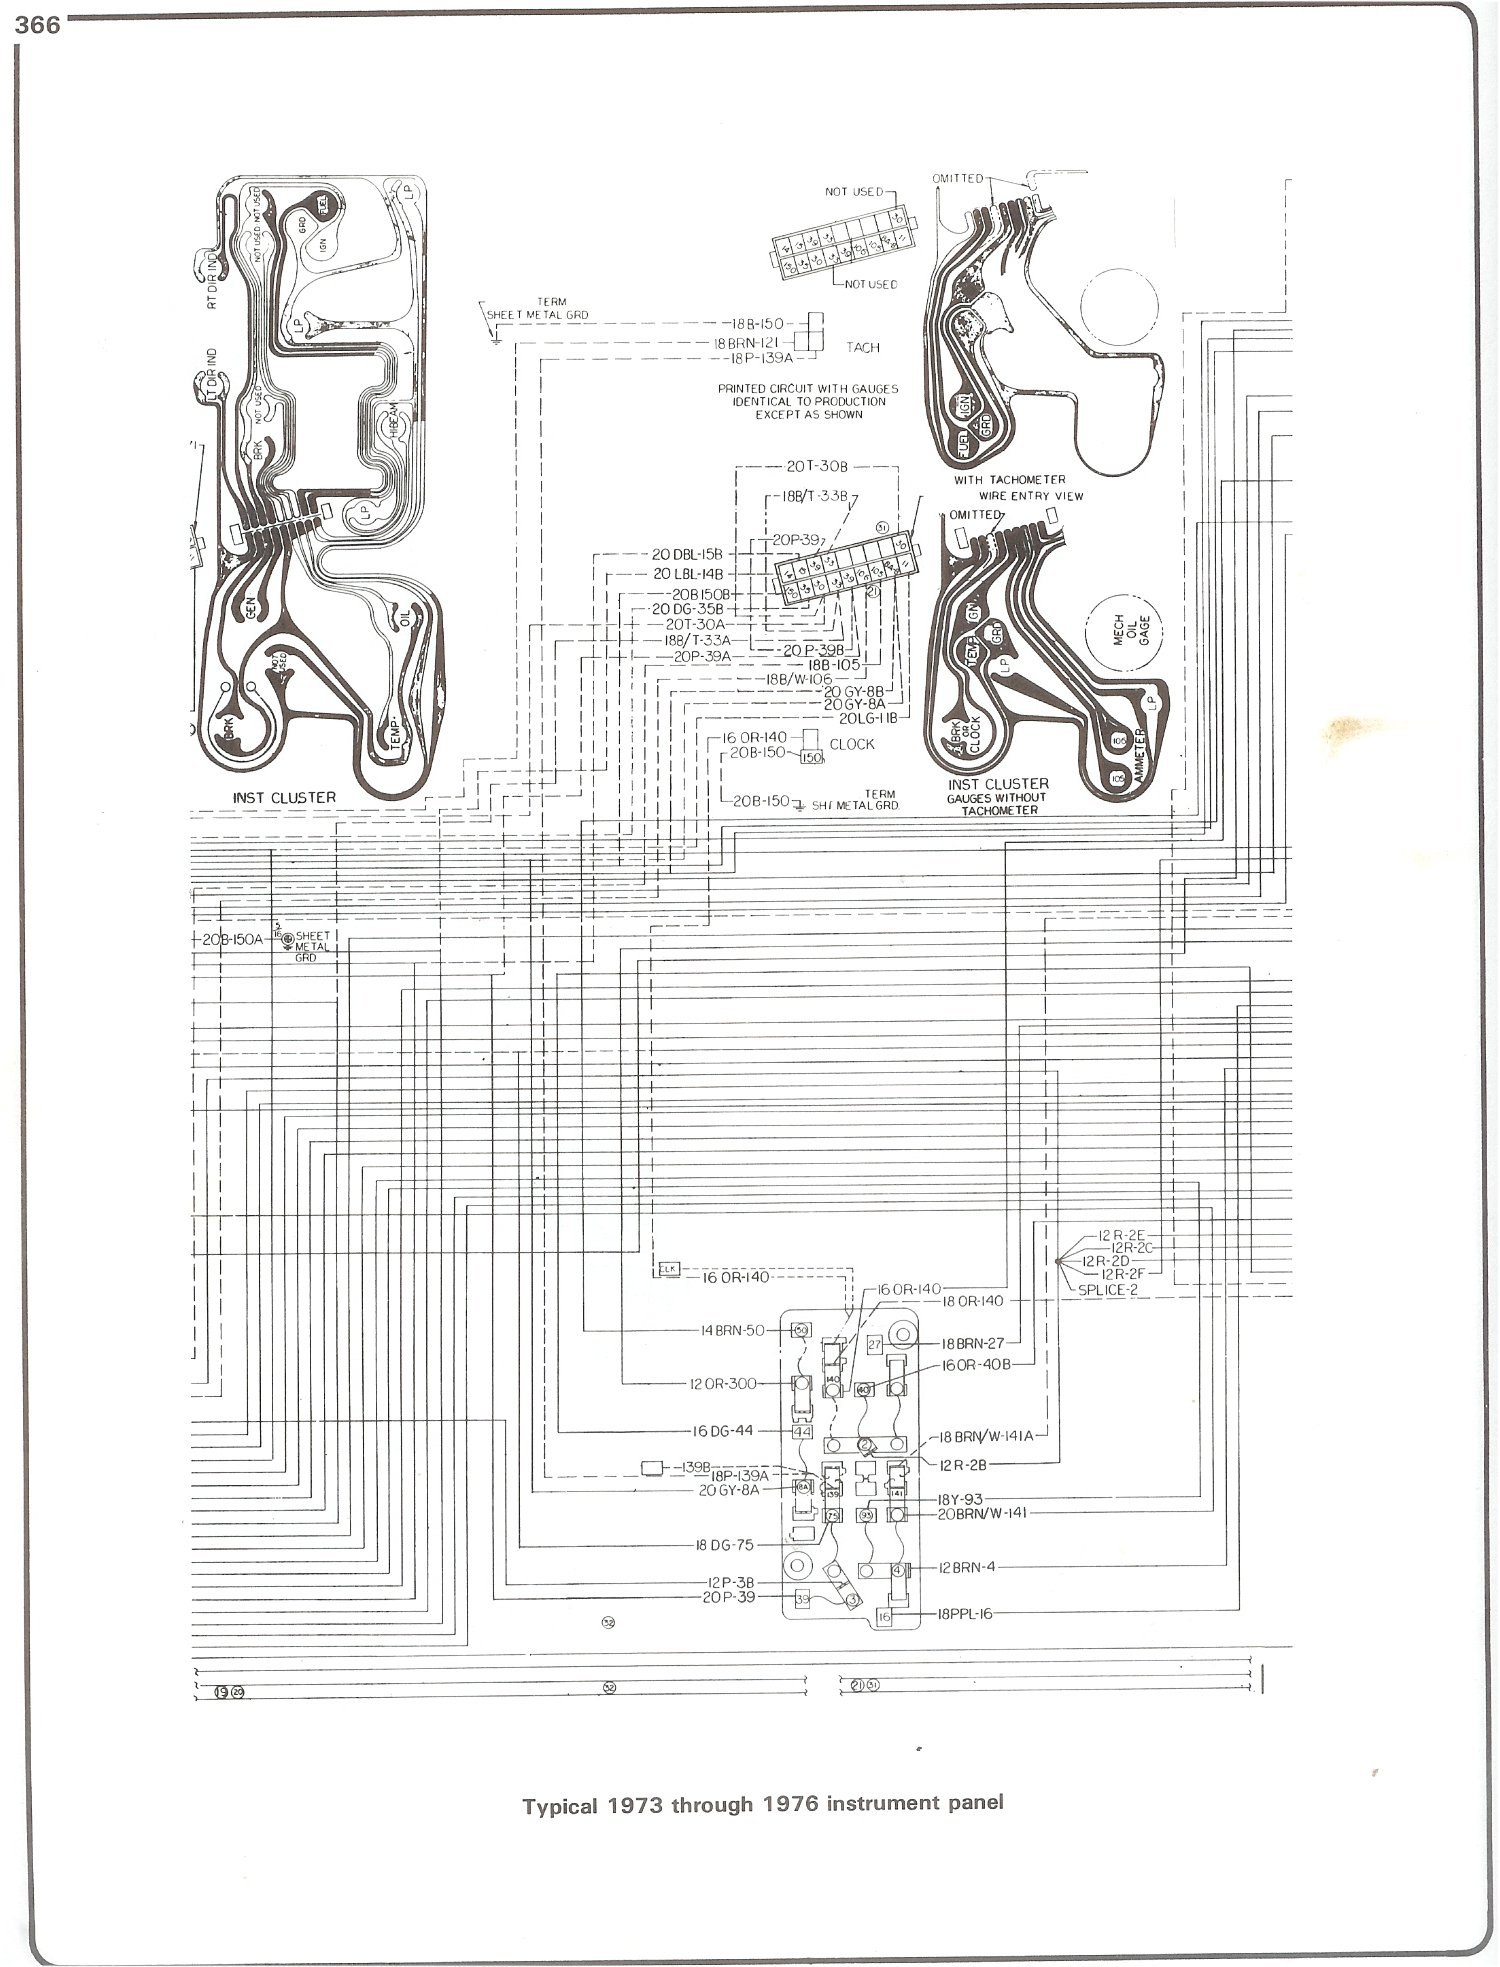 [WRG-6242] 1984 Chevy Truck Wiring Diagrams